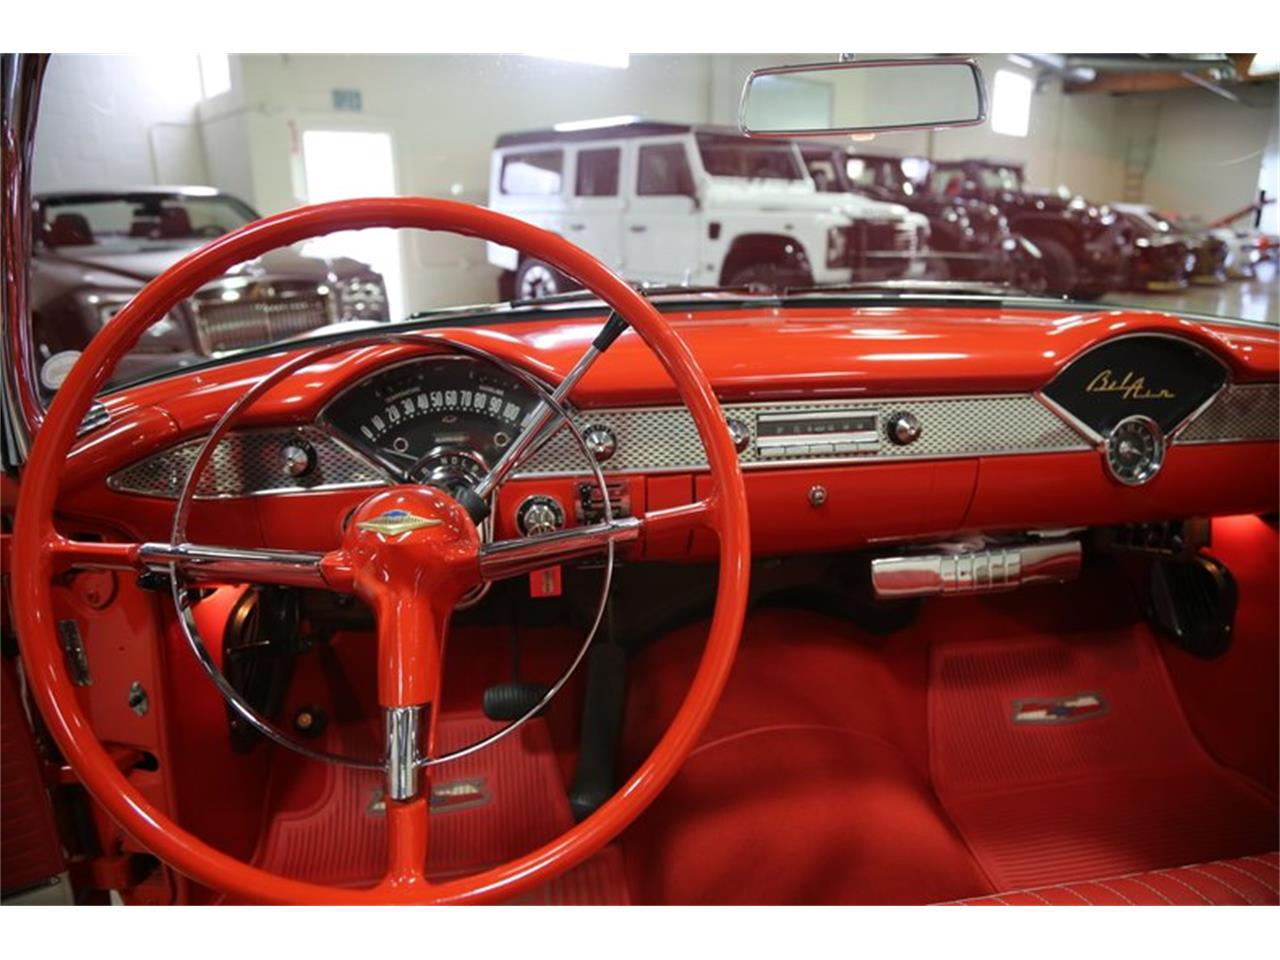 Large Picture of '55 Chevrolet Bel Air located in California - $94,950.00 - QEQA